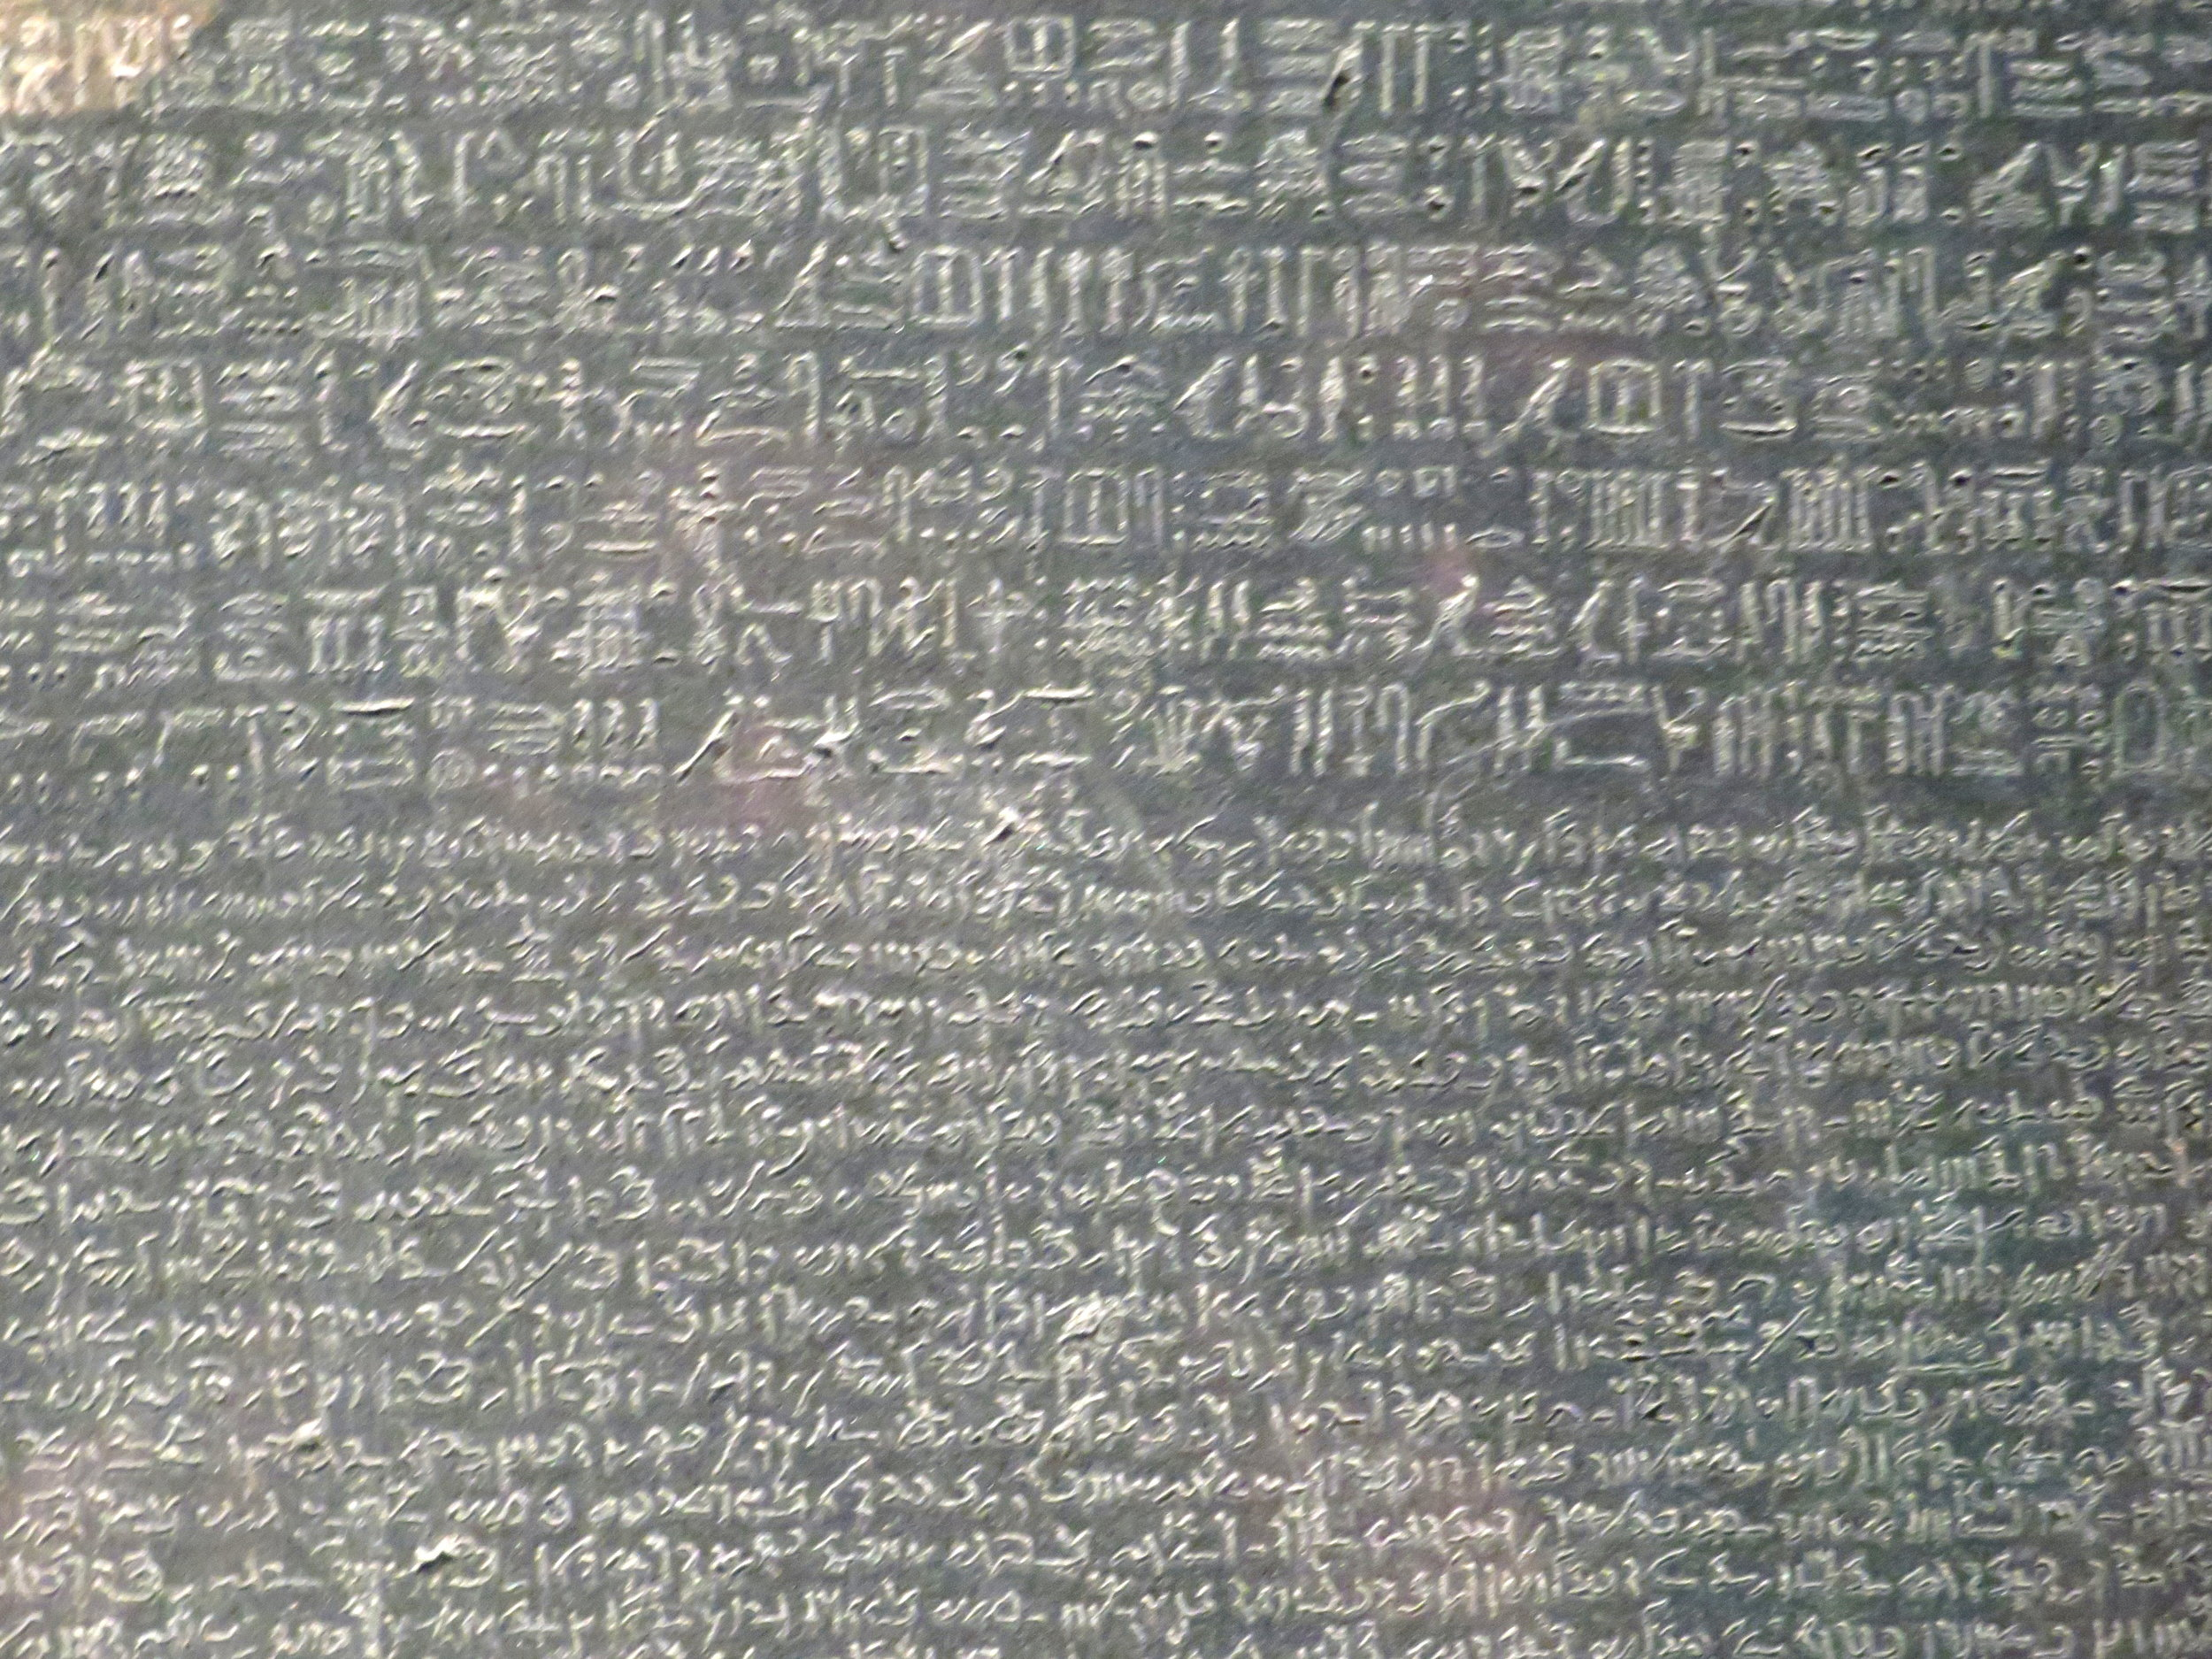 Close up of the Rosetta Stone inscriptions